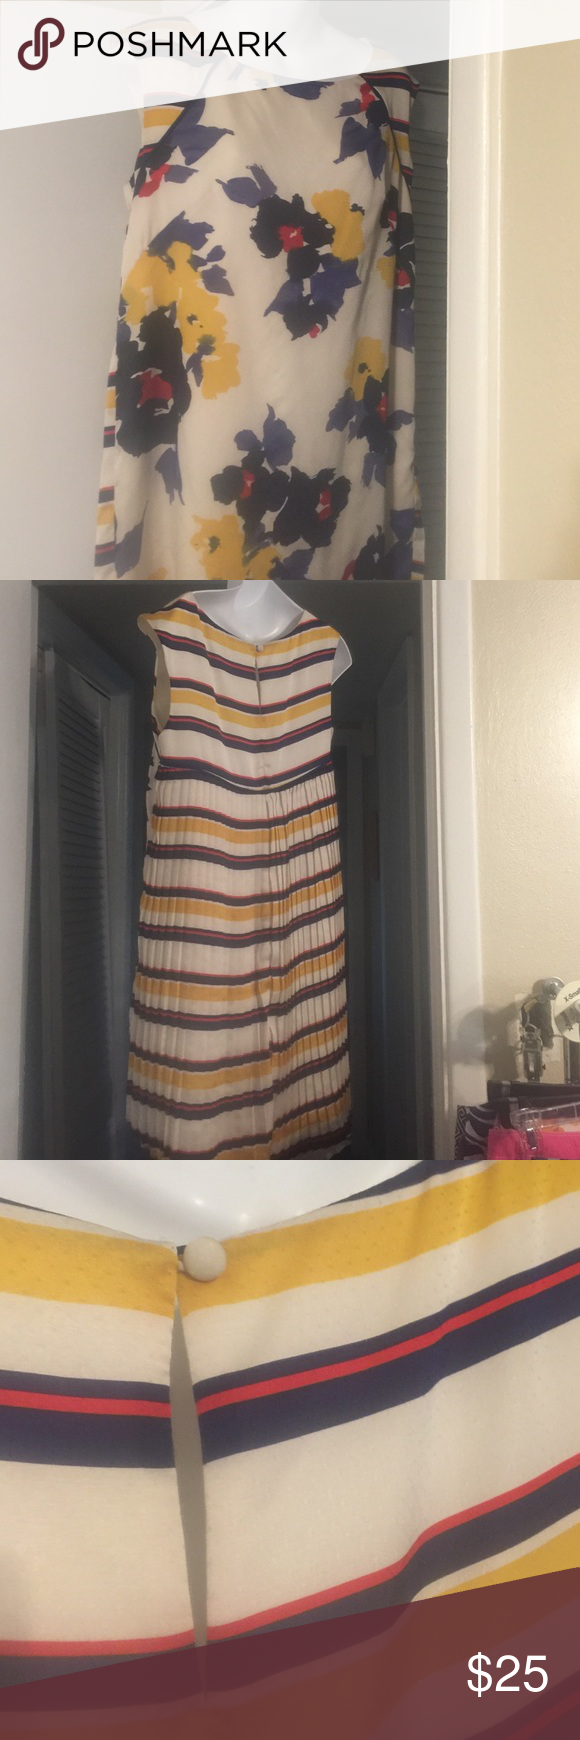 Jessica Simpson floral and striped dress This Jessica Simpson floral and striped dress is lined Jessica Simpson Dresses